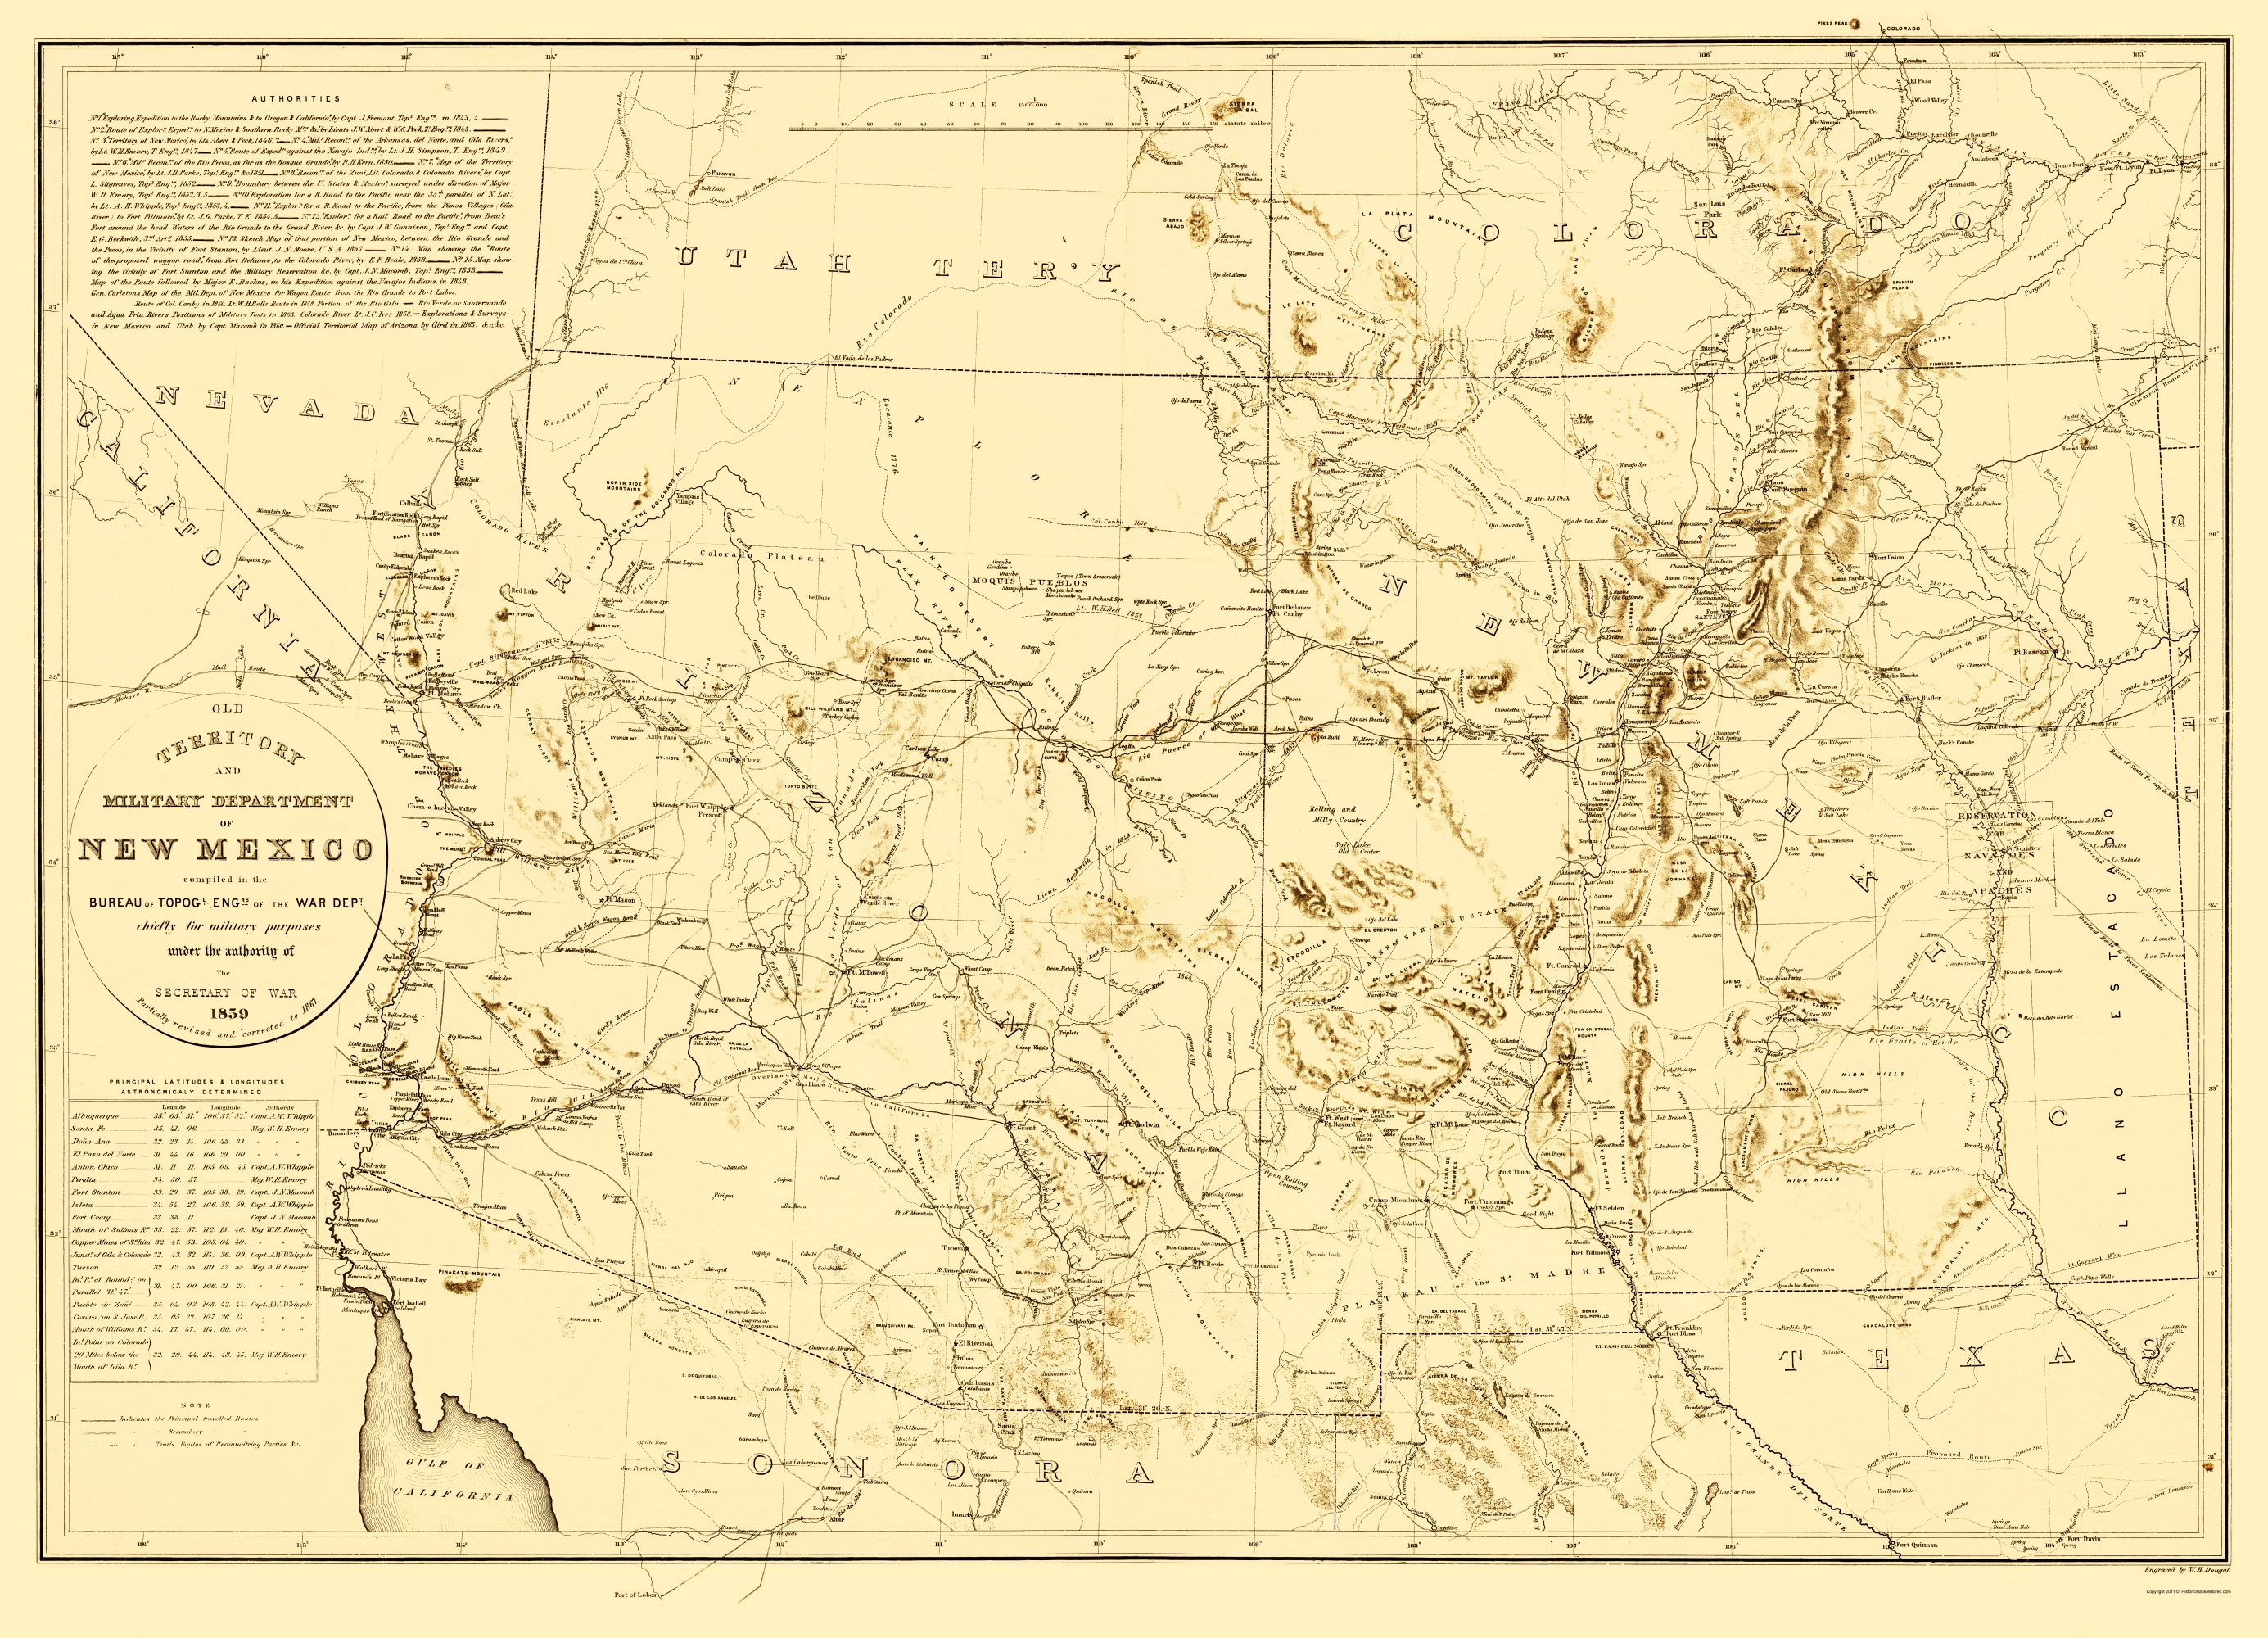 Old Topographical Map - New Mexico Territory 1859